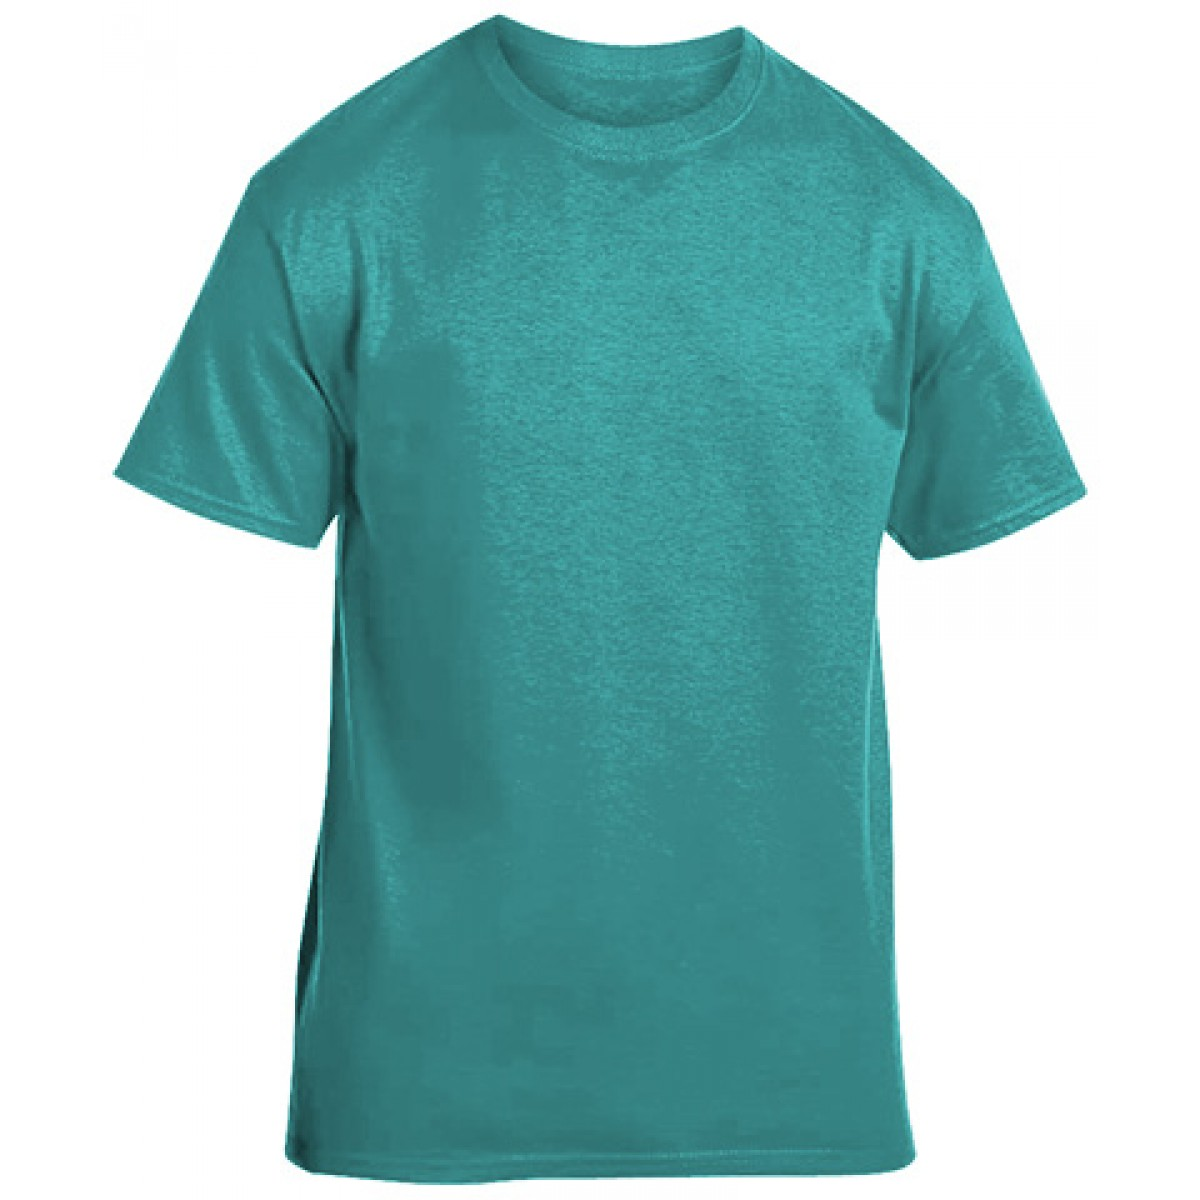 Soft 100% Cotton T-Shirt-Jade-M